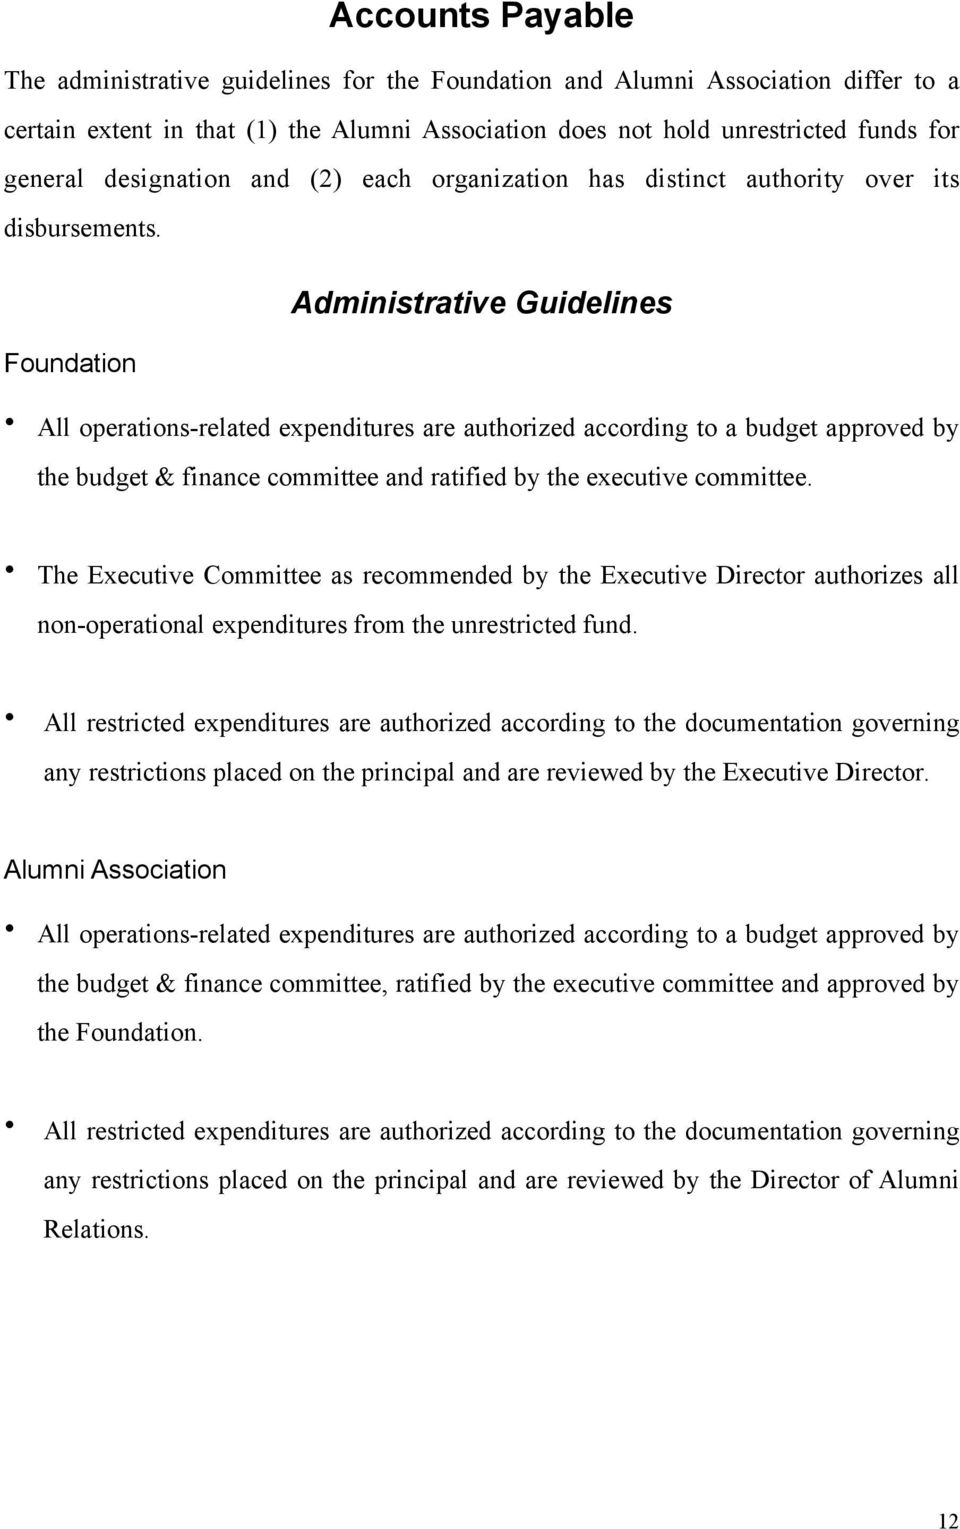 Administrative Guidelines Foundation All operations-related expenditures are authorized according to a budget approved by the budget & finance committee and ratified by the executive committee.